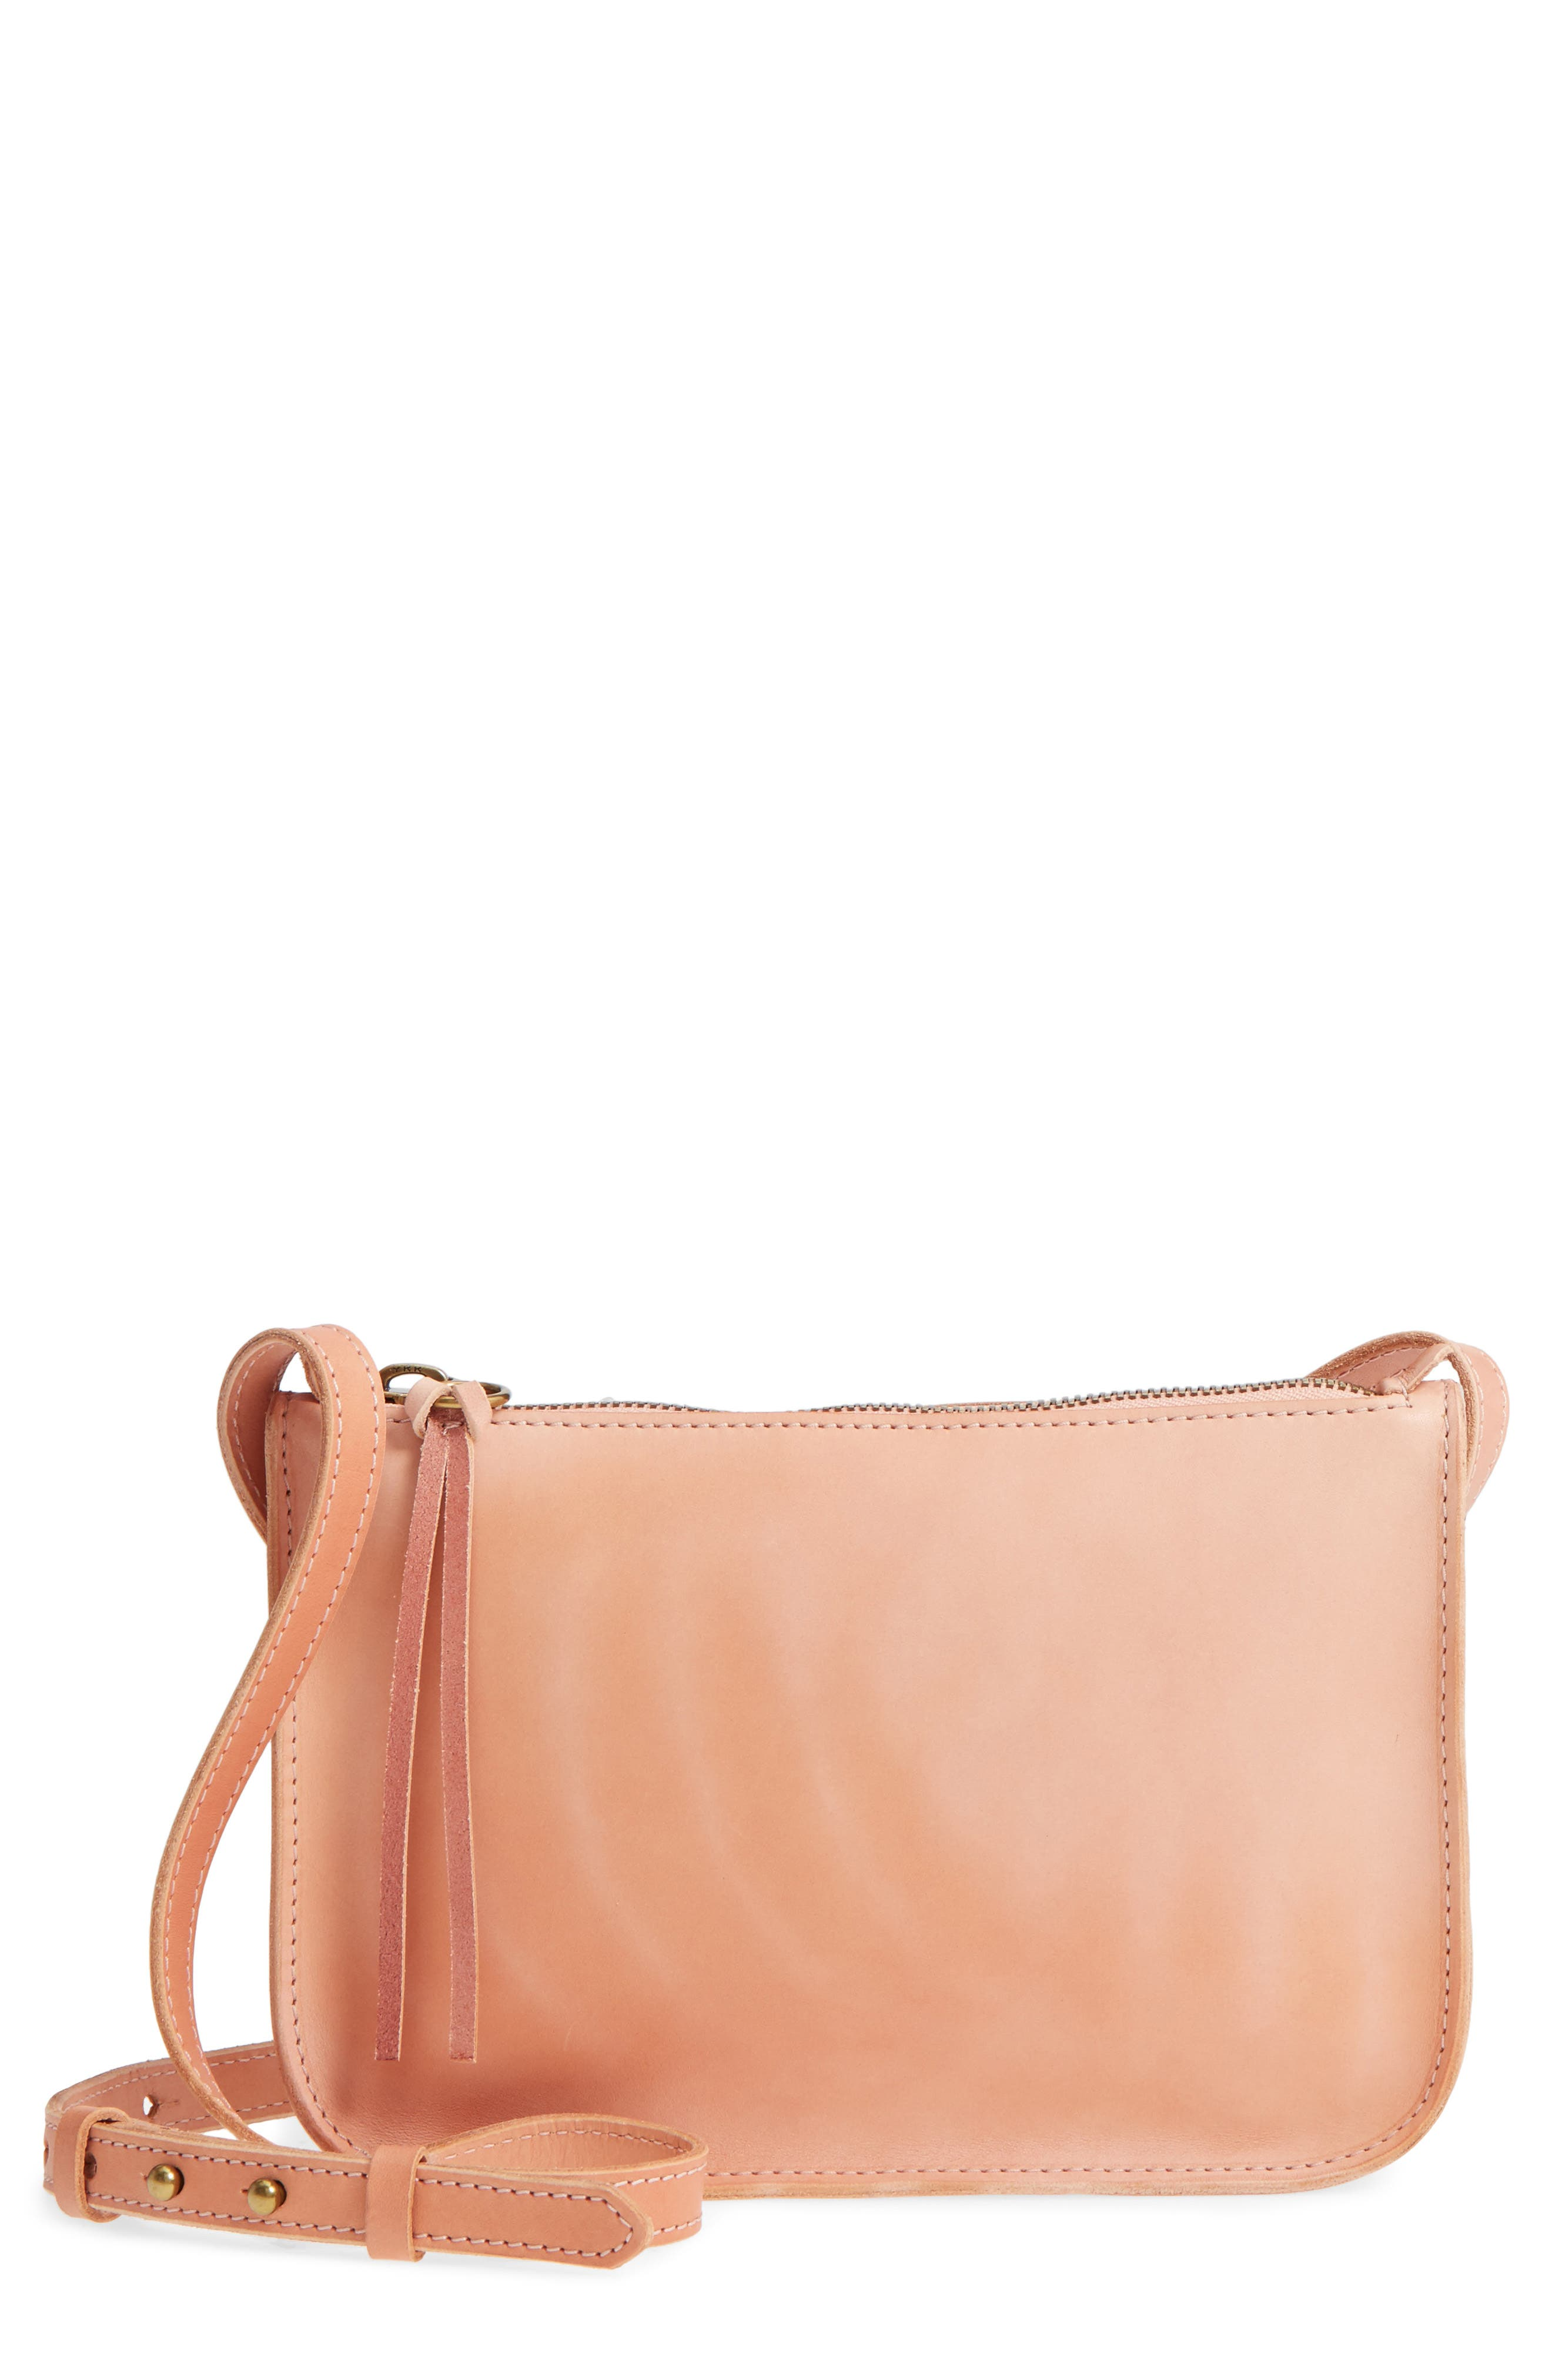 Simple Leather Crossbody Bag,                             Main thumbnail 1, color,                             PETAL PINK